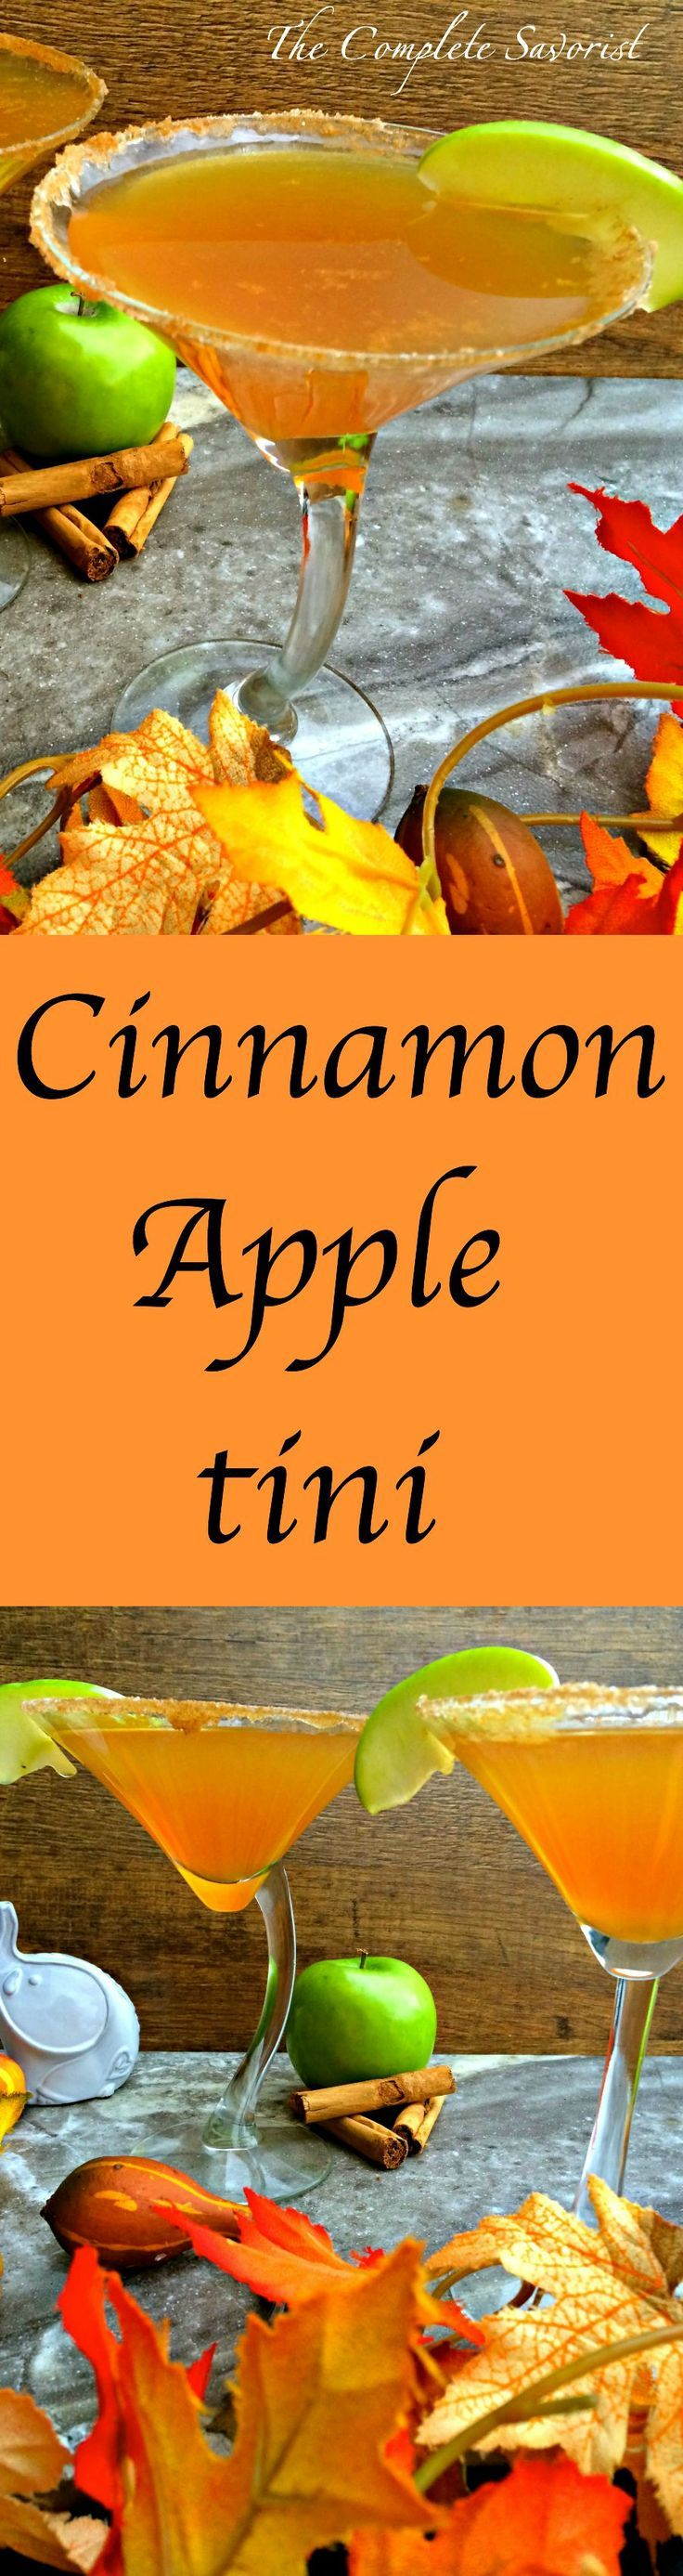 Cinnamon Apple-tini is a delicious fall flavored cocktail, perfect for entertaining ~ The Complete Savorist